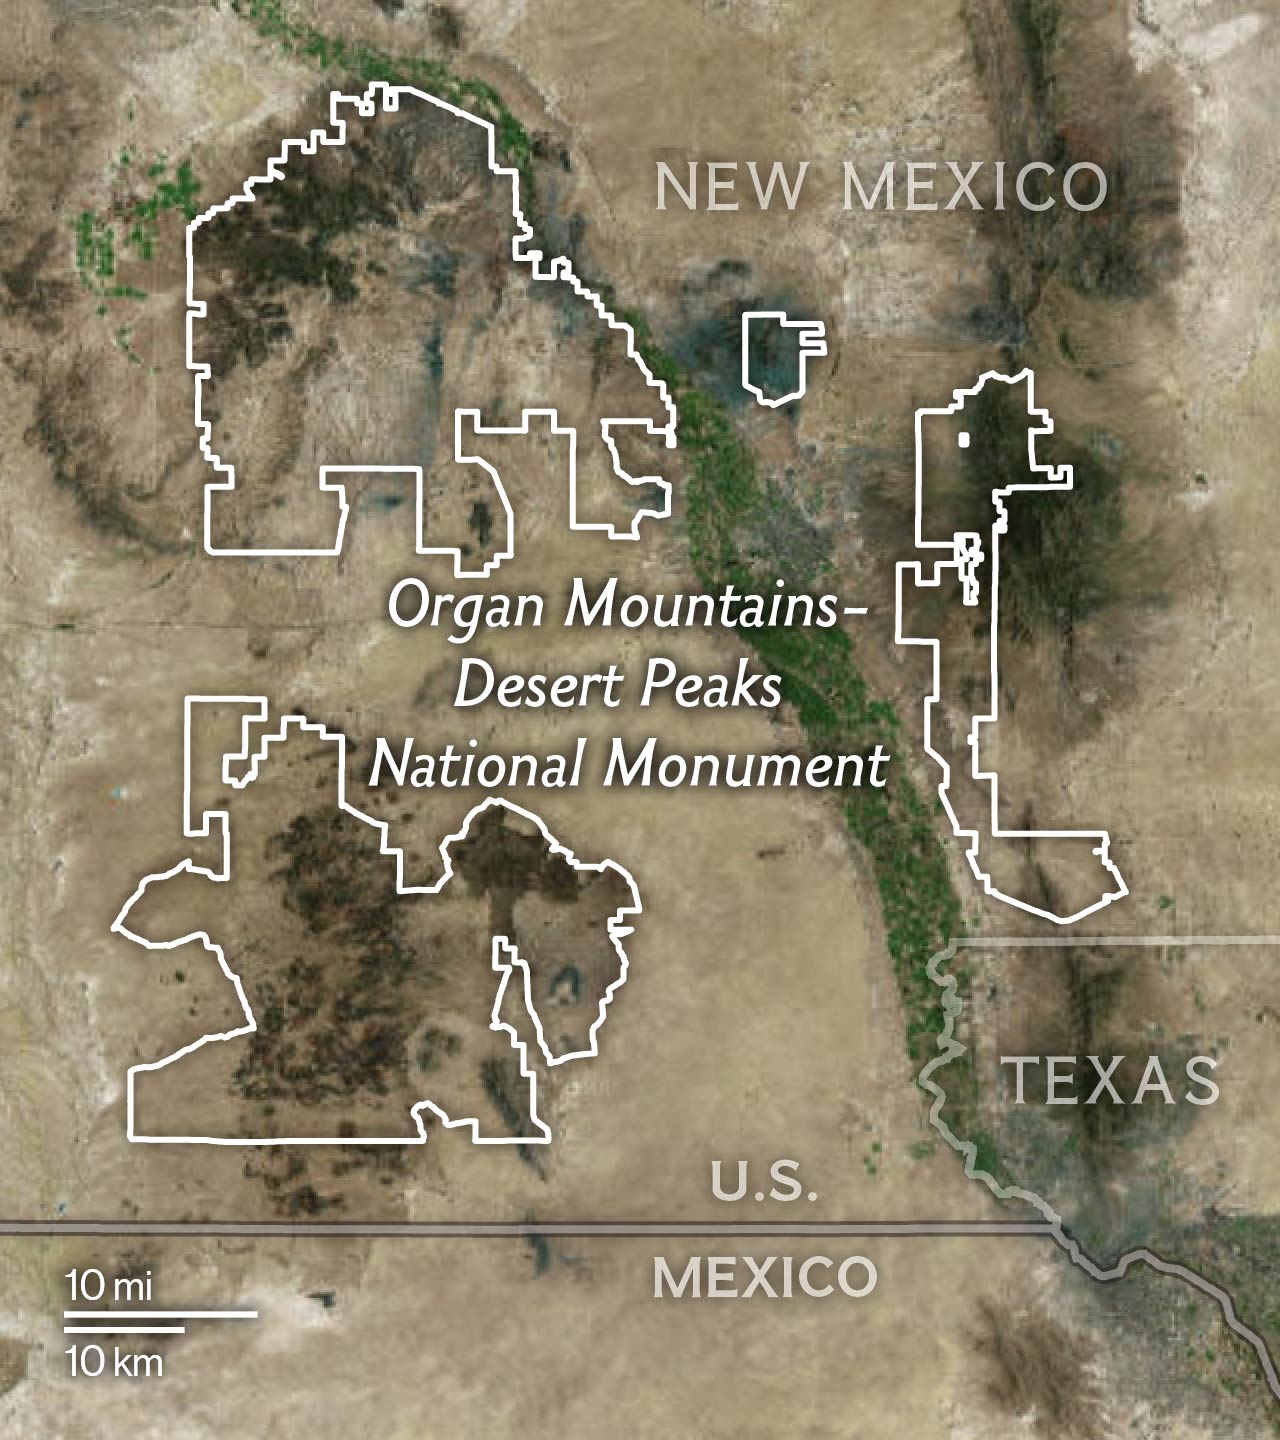 Created In 2014 By President Obama This Monument Includes 496 000 Acres Across Southern New Mexico With A Rich History Dating To The Folsom And Clovis